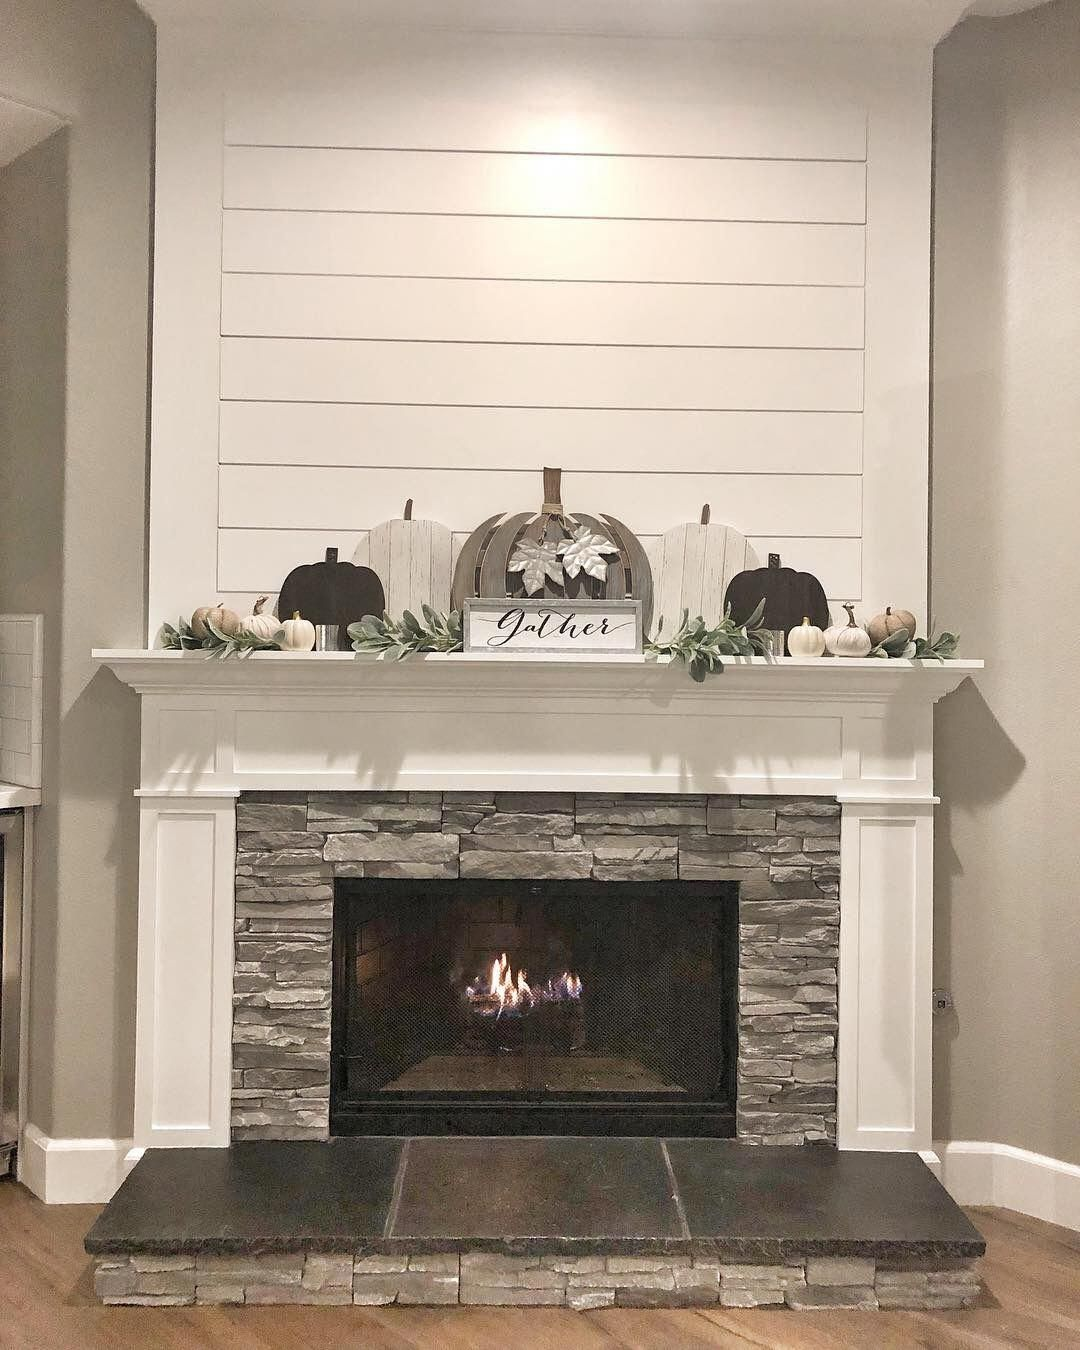 Shiplap Fireplace Homeremodelprojects Farmhouse Fireplace Mantels Fireplace Remodel Home Fireplace